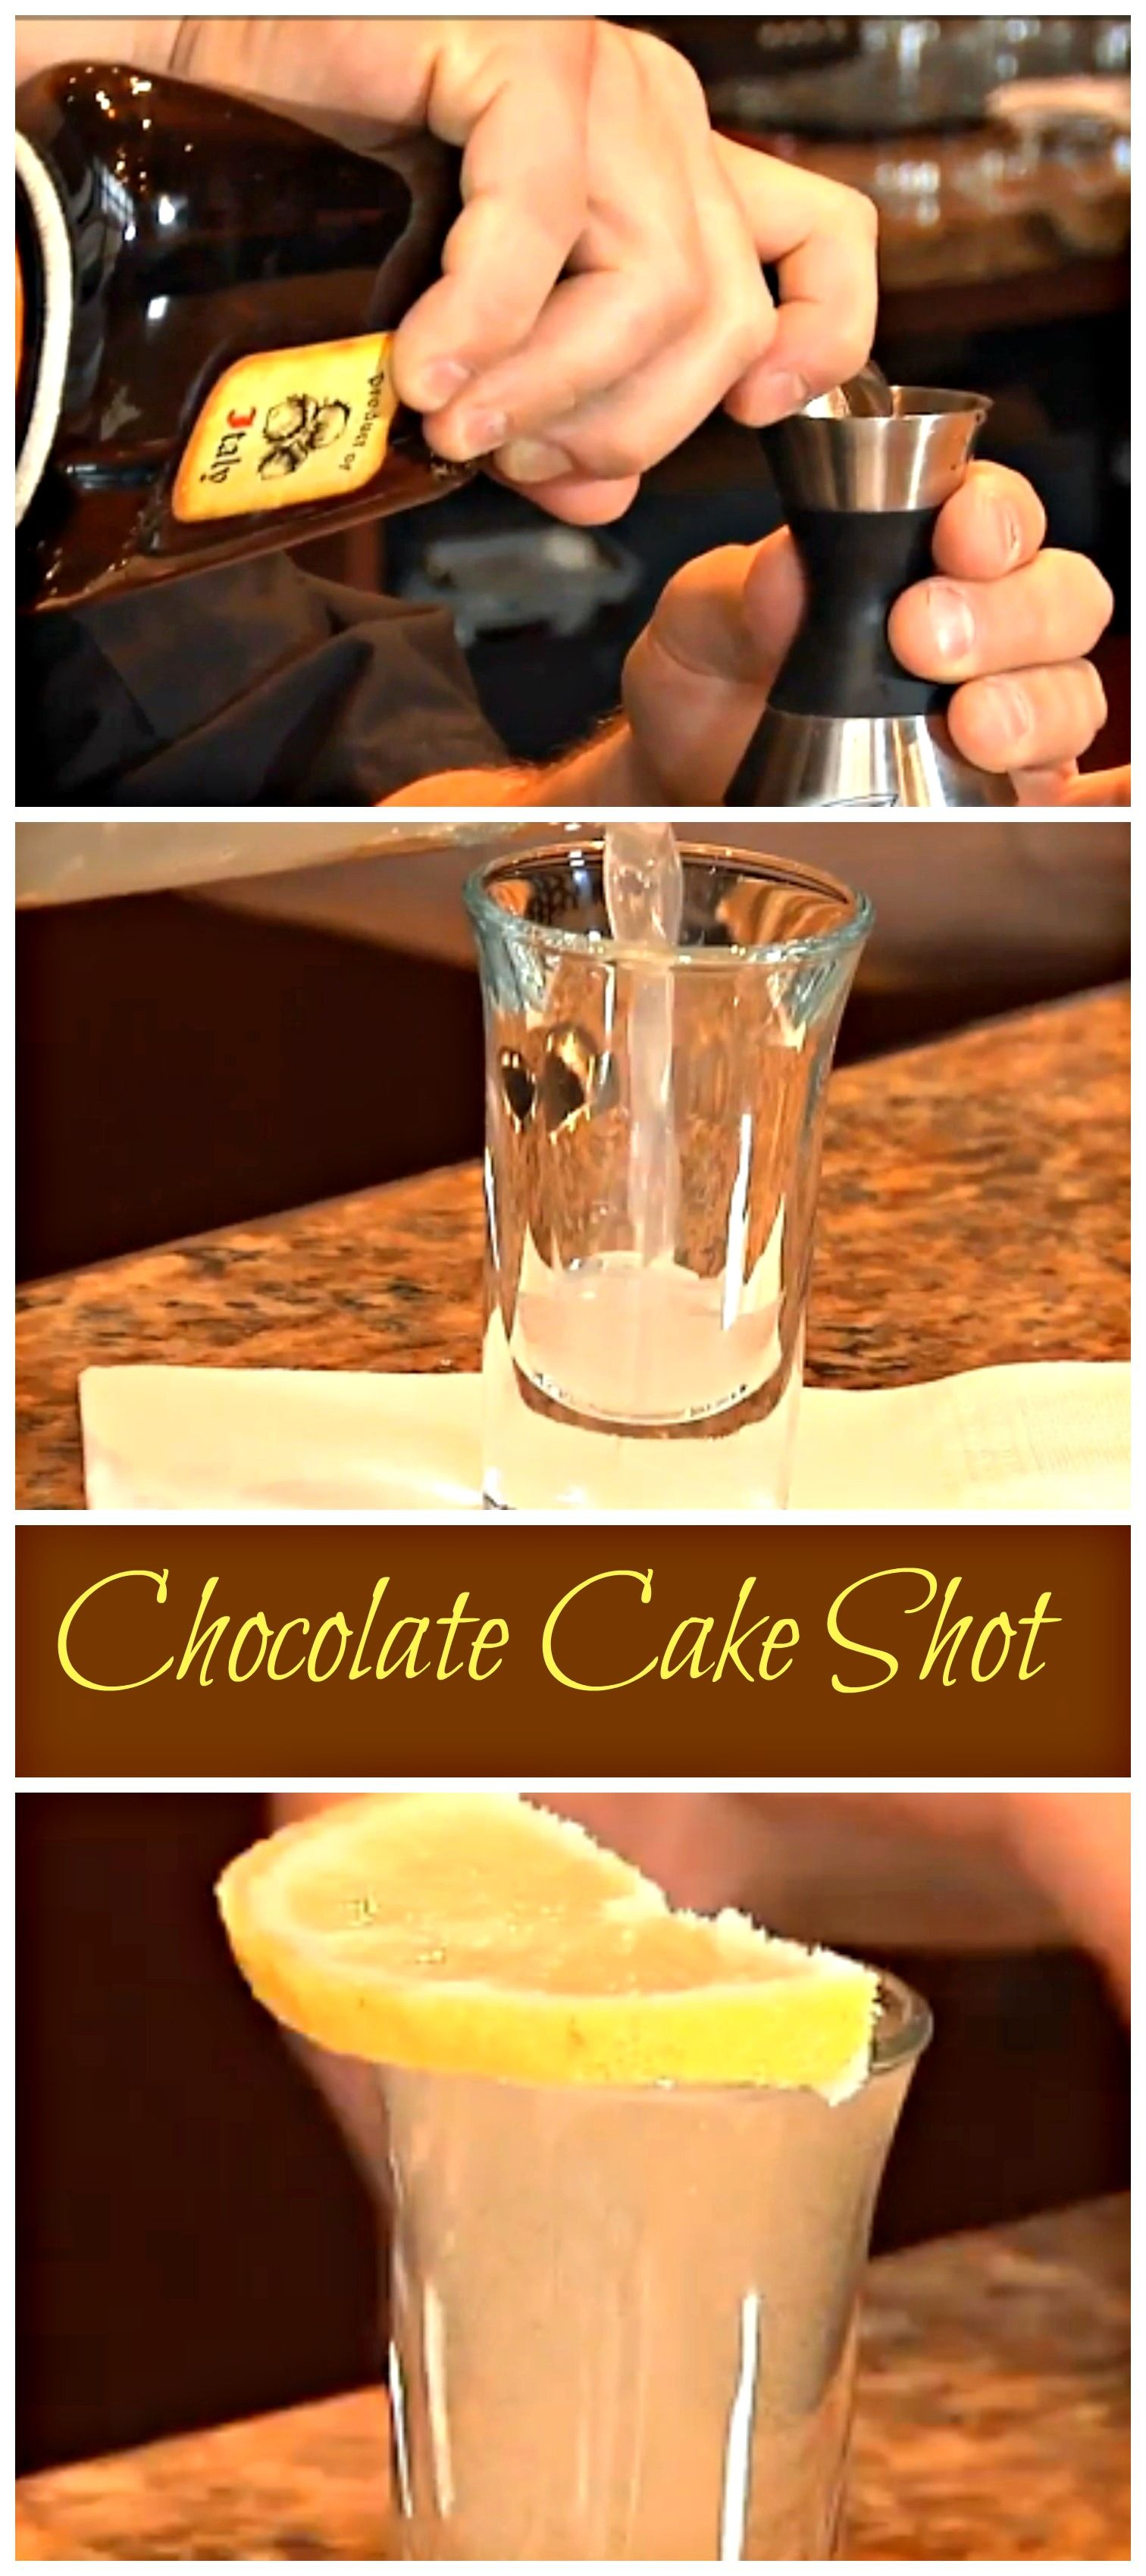 Pin by iFoodtv on Liquid Refreshments Pinterest Chocolate cake